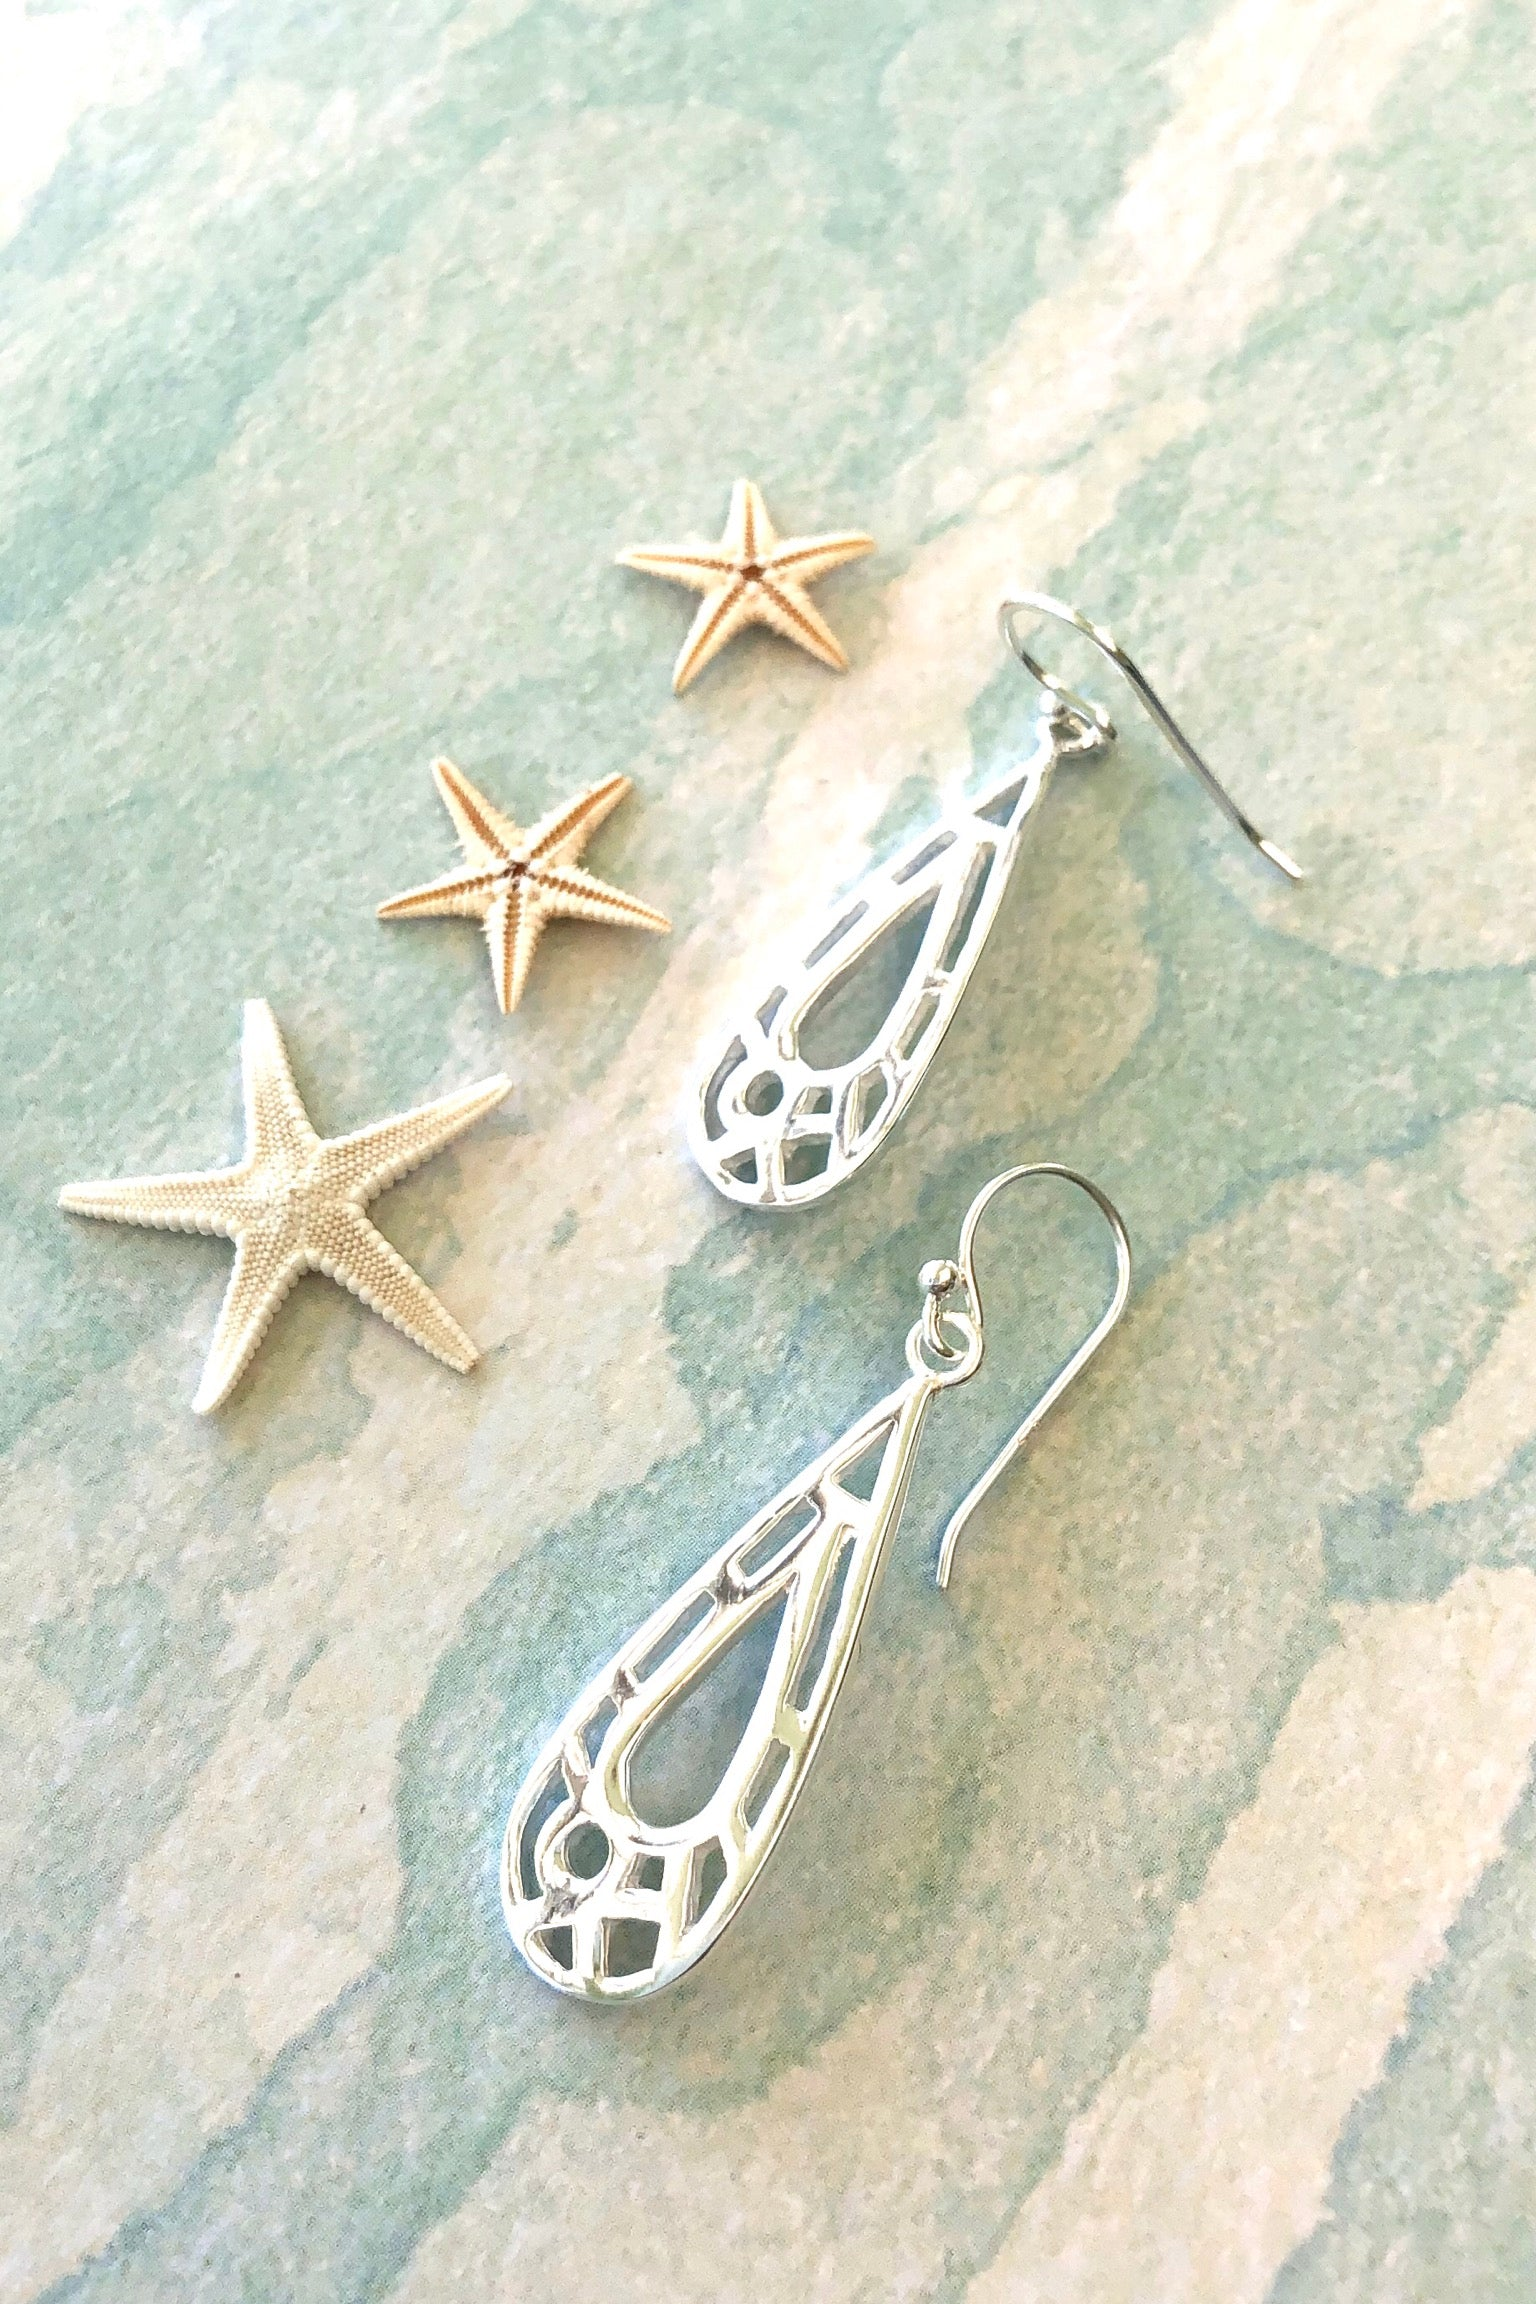 bohemian inspired earrings are the perfect shape and style for summer